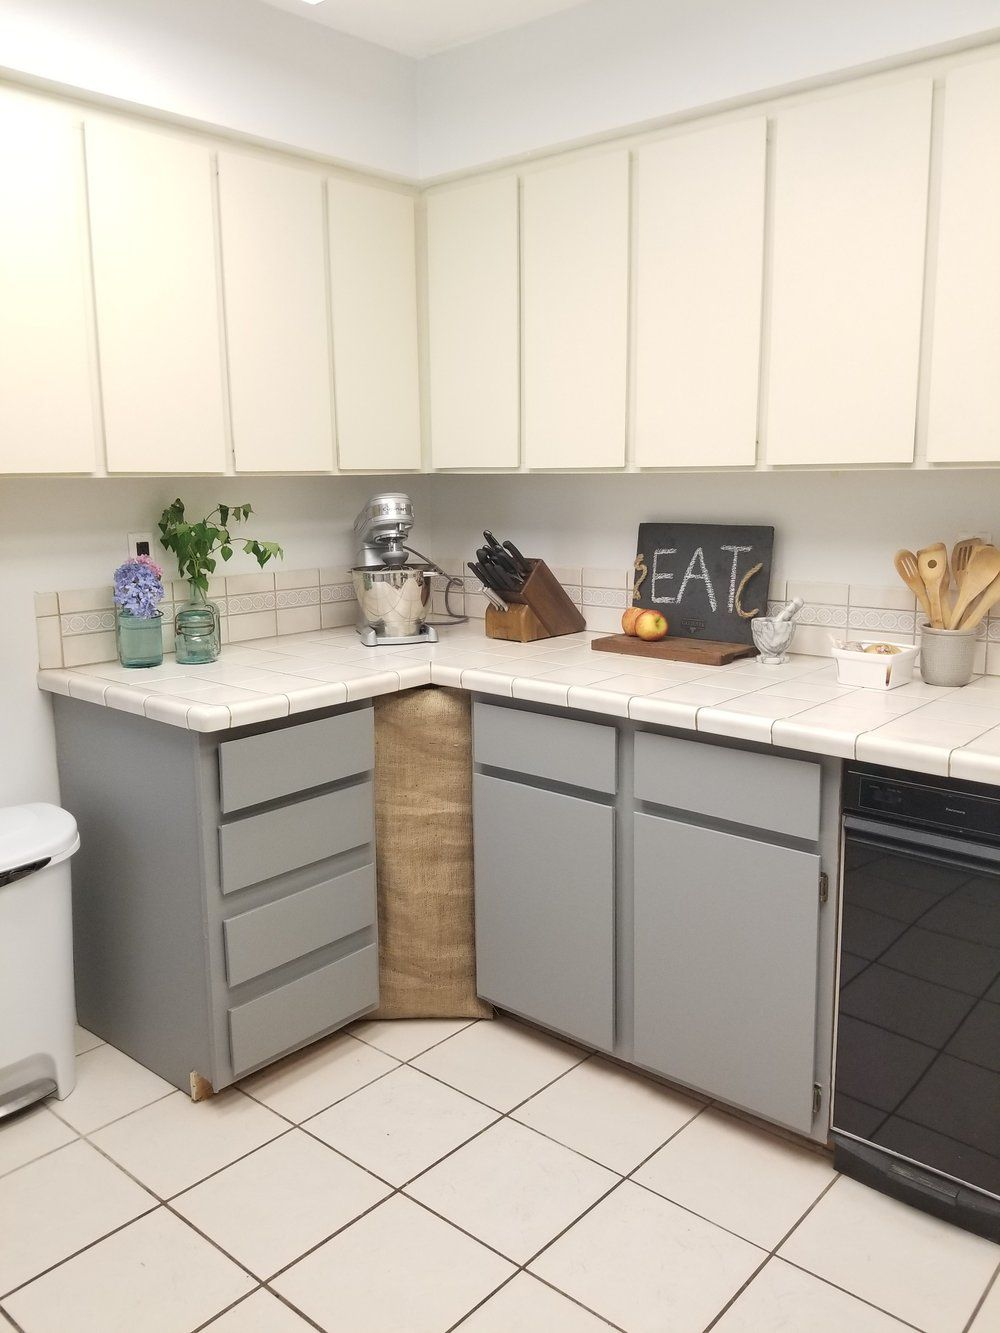 Add Peel And Stick Wallpaper On Cabinets Before And After Of Kitchen Updates On A Budget 200 Kitchen Updates Wi Rental Kitchen Home Decor Home Decor Kitchen